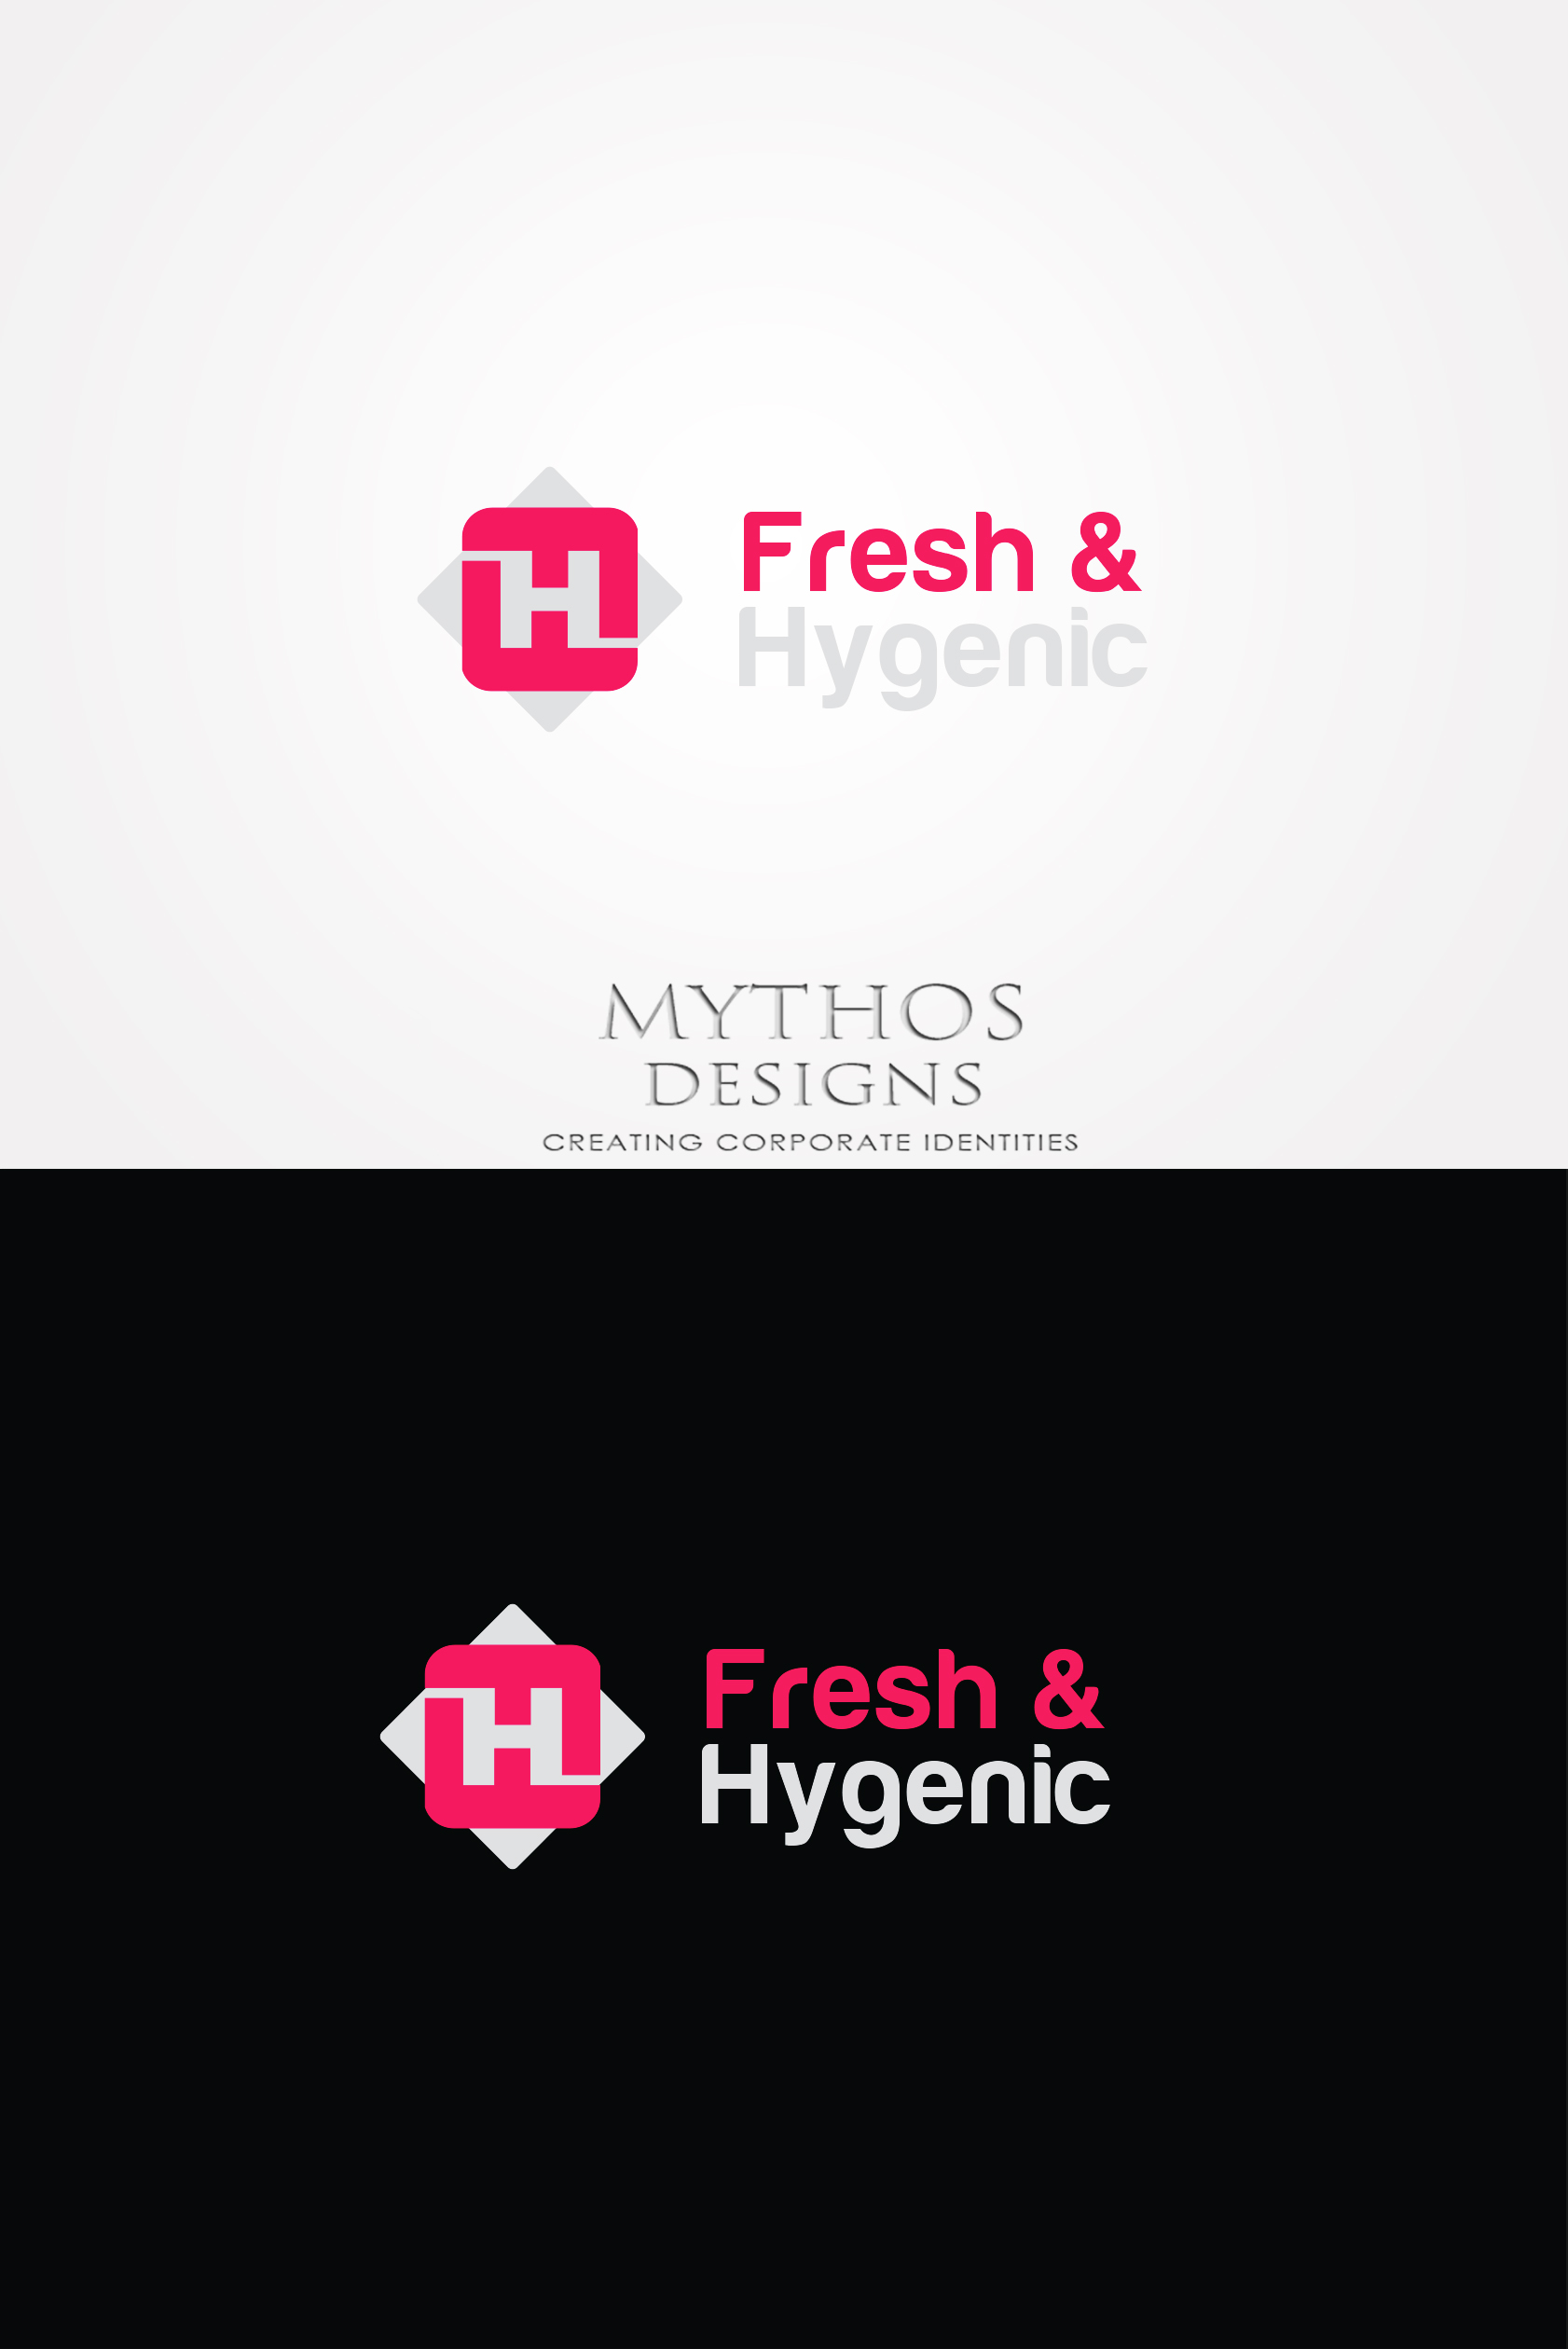 Logo Design by Mythos Designs - Entry No. 148 in the Logo Design Contest Fun Logo Design for Fresh & Hygenic.